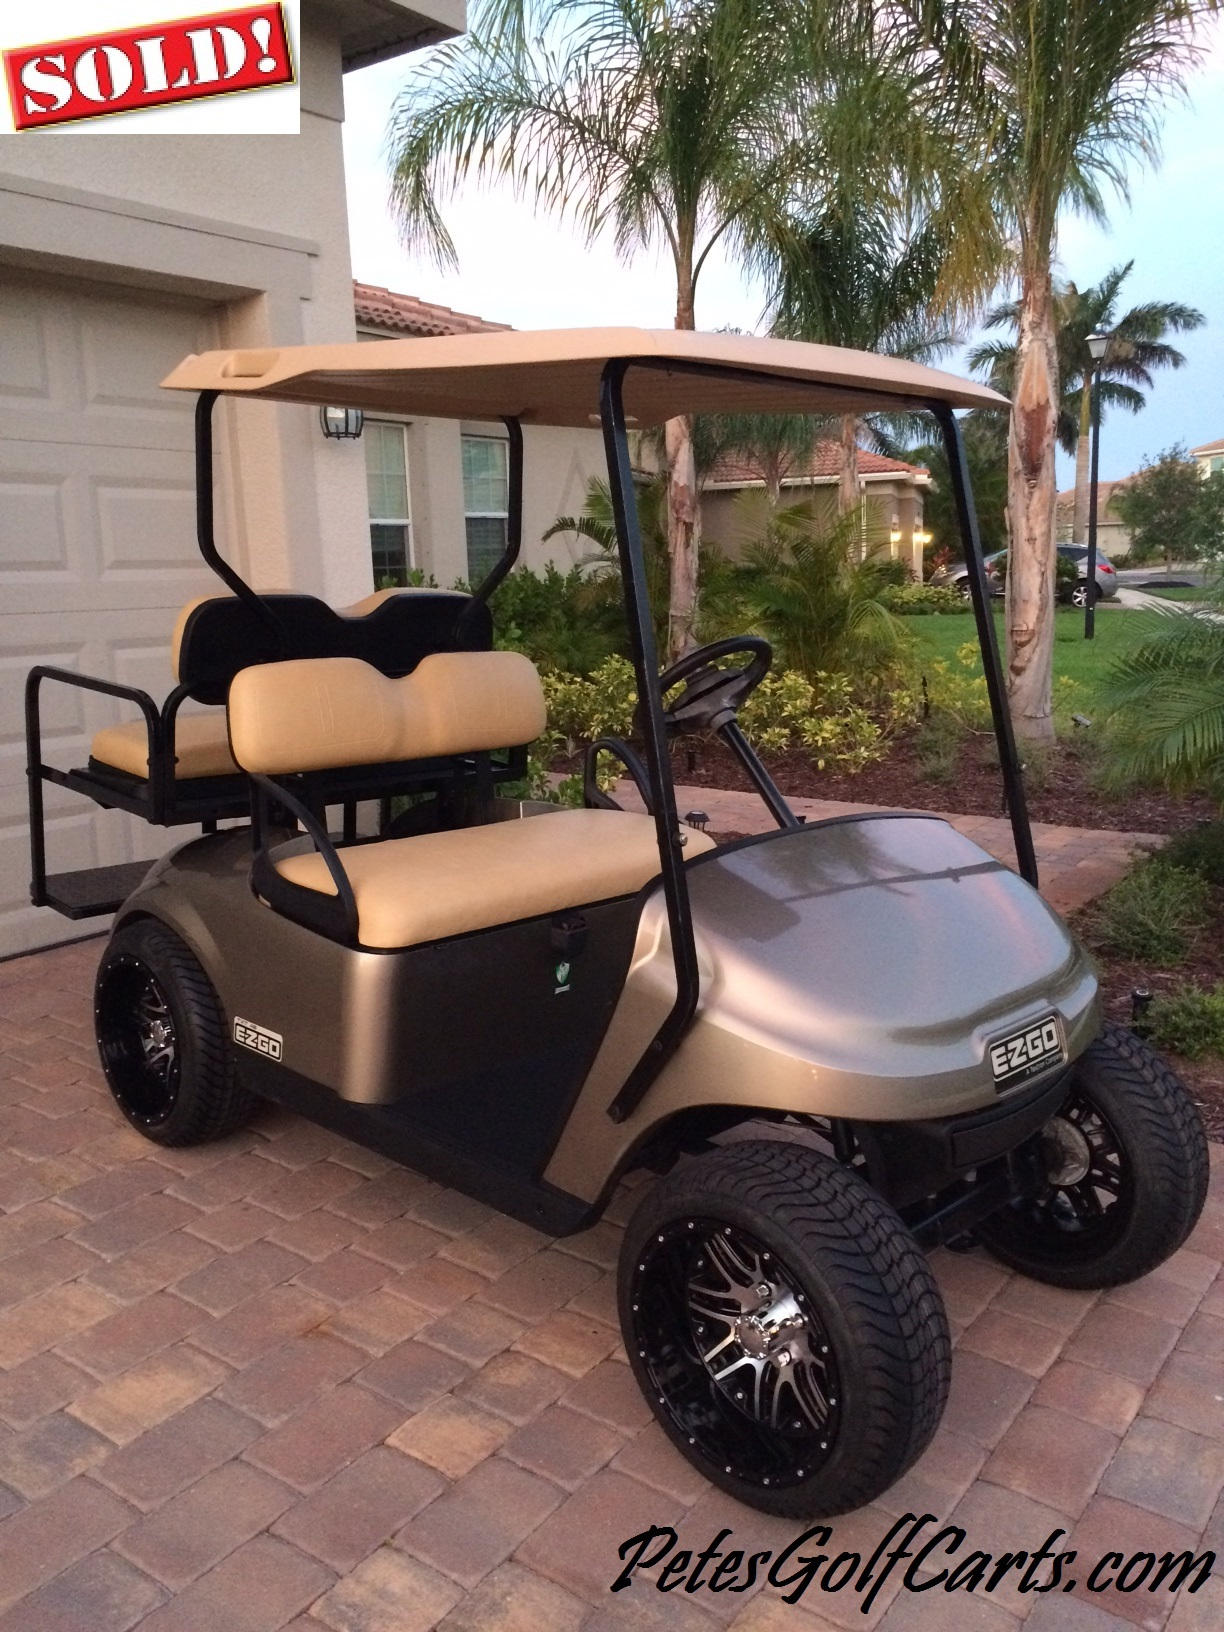 ezgo windshield xlr mic wiring diagram txt golf cart for sale 2014 electric model pete 39s